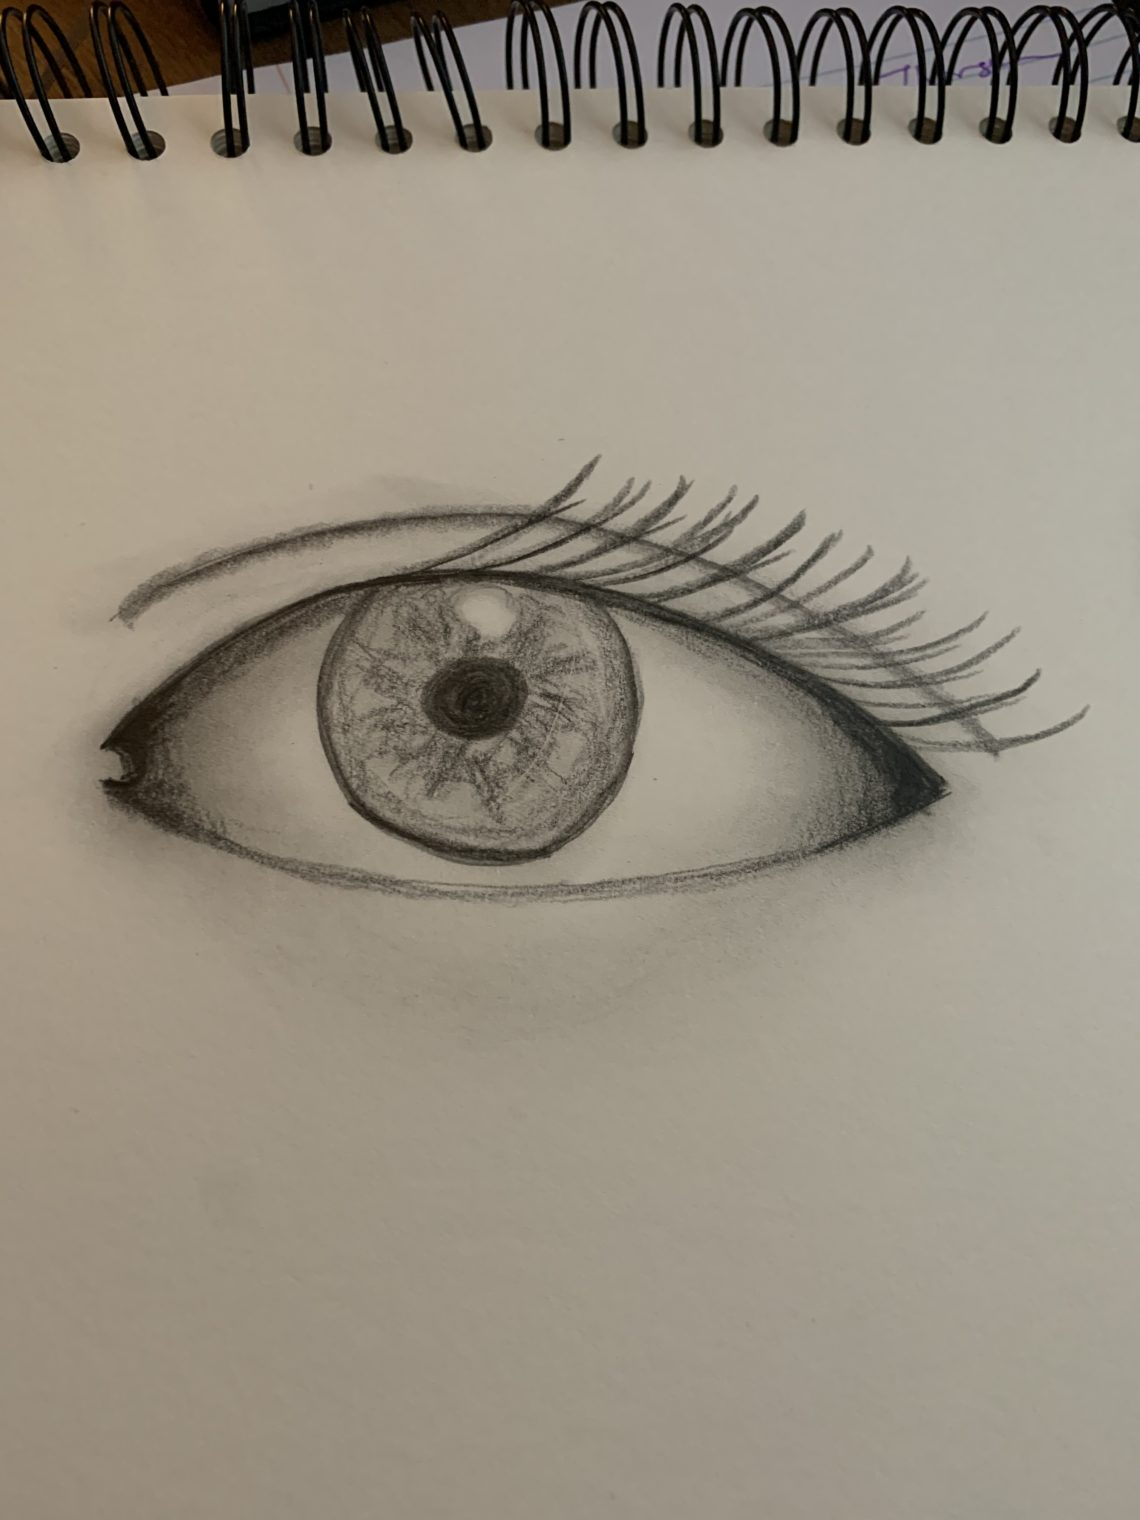 My drawing of an eye